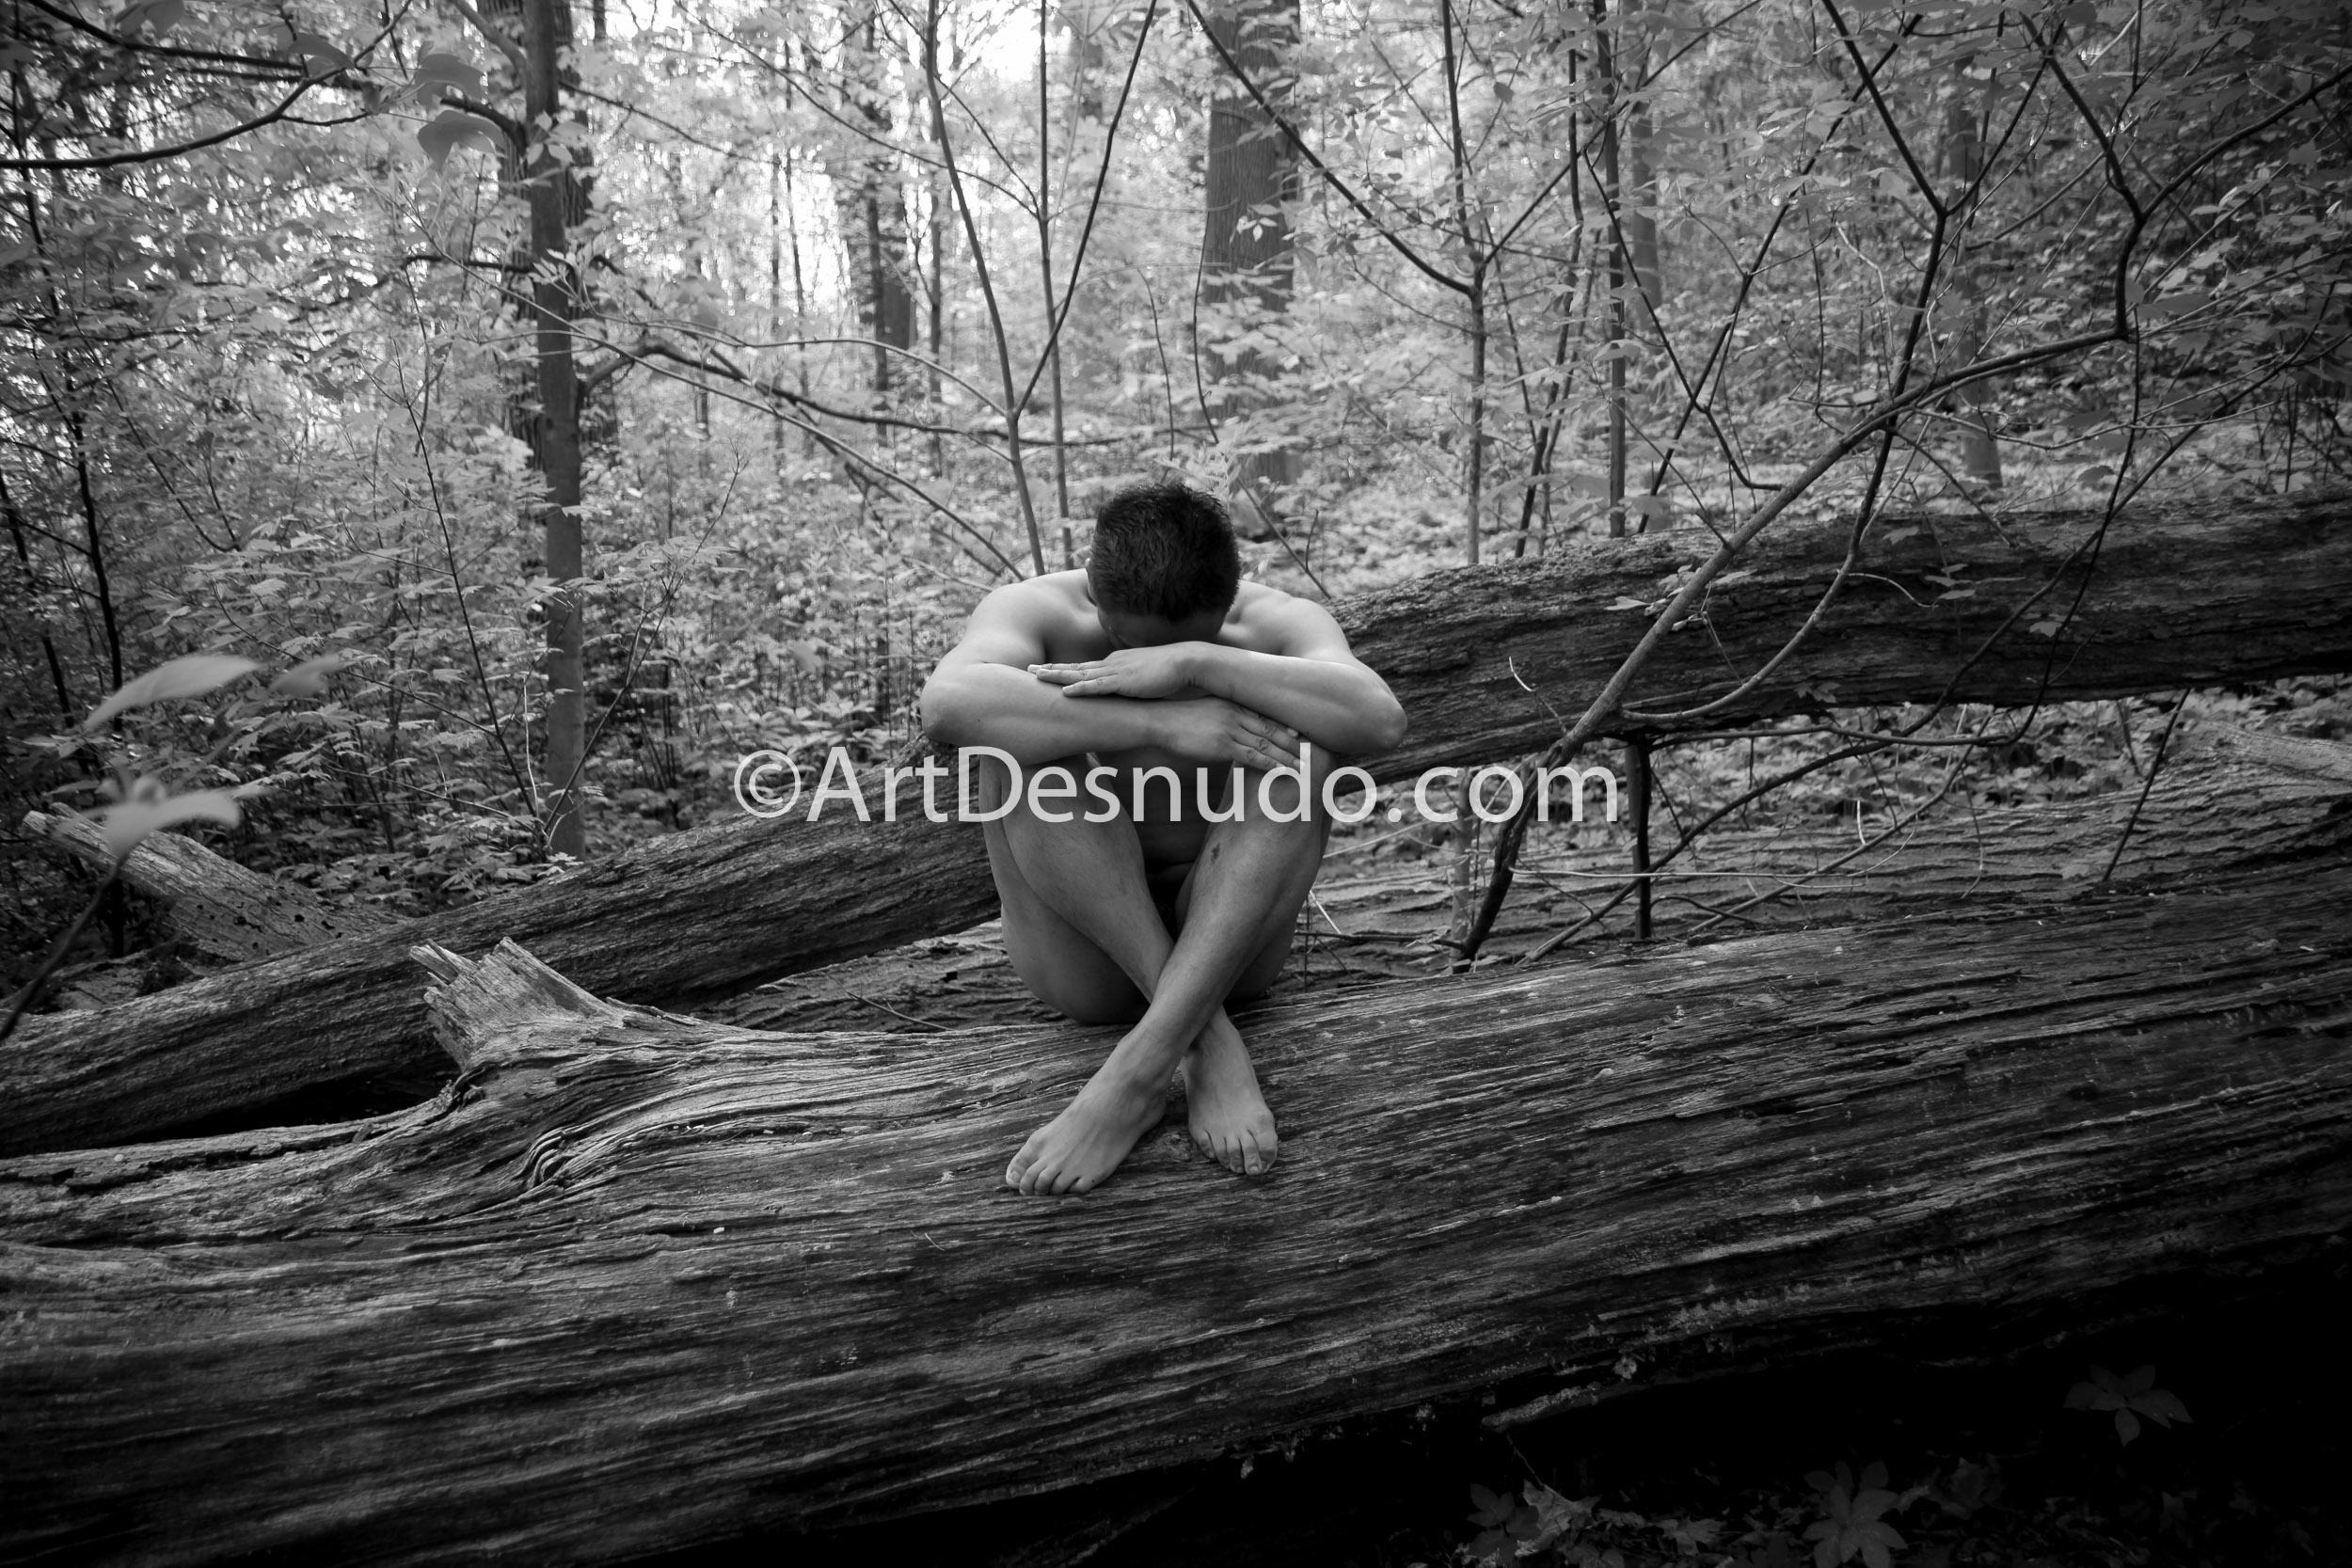 I created these nude photographs with a Latino model in 2011. Do you love Mother Nature? Do you love trees? Let's create nude photographs with trees in New York City. Send me a message. ArtDesnudo.com Creé estas fotografías de desnudos con un modelo Latino en el 2011. ¿Amas a la Madre Naturaleza? ¿Amas los árboles? Vamos a crear fotografías de desnudos con árboles en la ciudad de Nueva York. Envíame un mensaje. ArtDesnudo.com